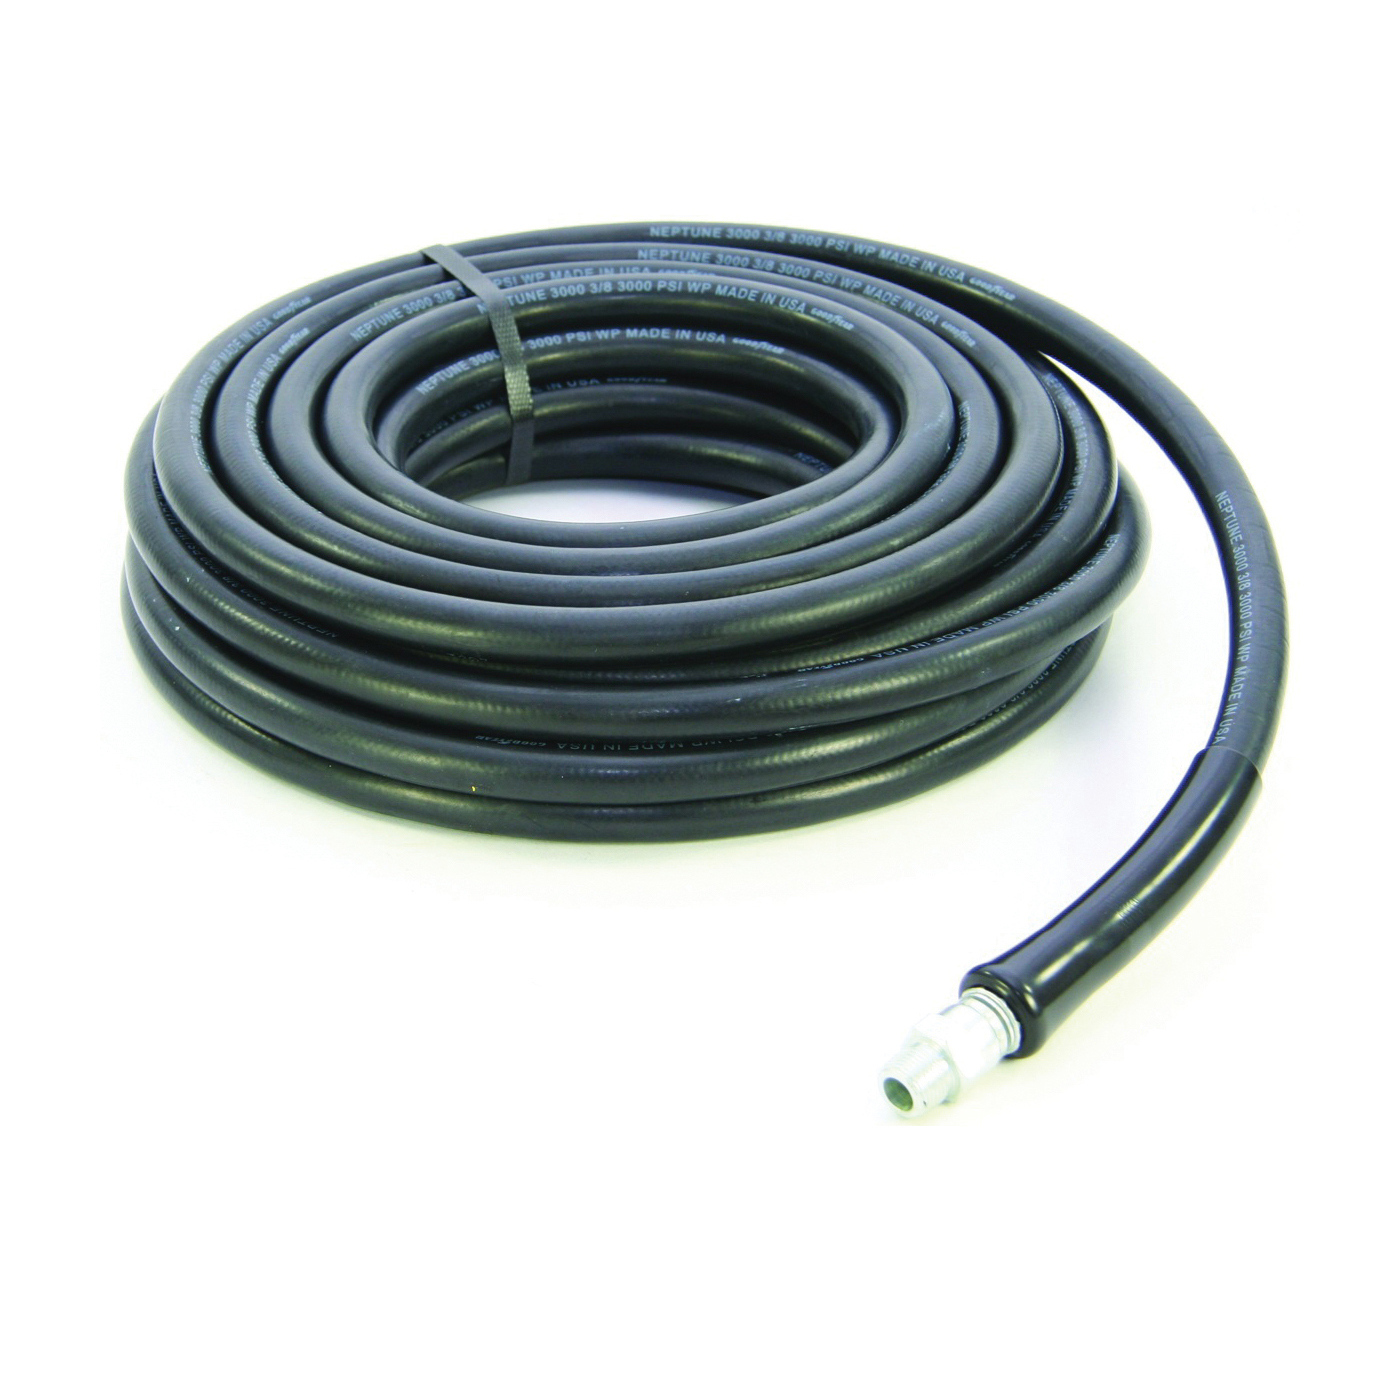 Picture of ABBOTT RUBBER 1190-0375-50 Pressure Washer Hose Assembly, 50 ft L, NPT Male x Male Swivel, Rubber, Black